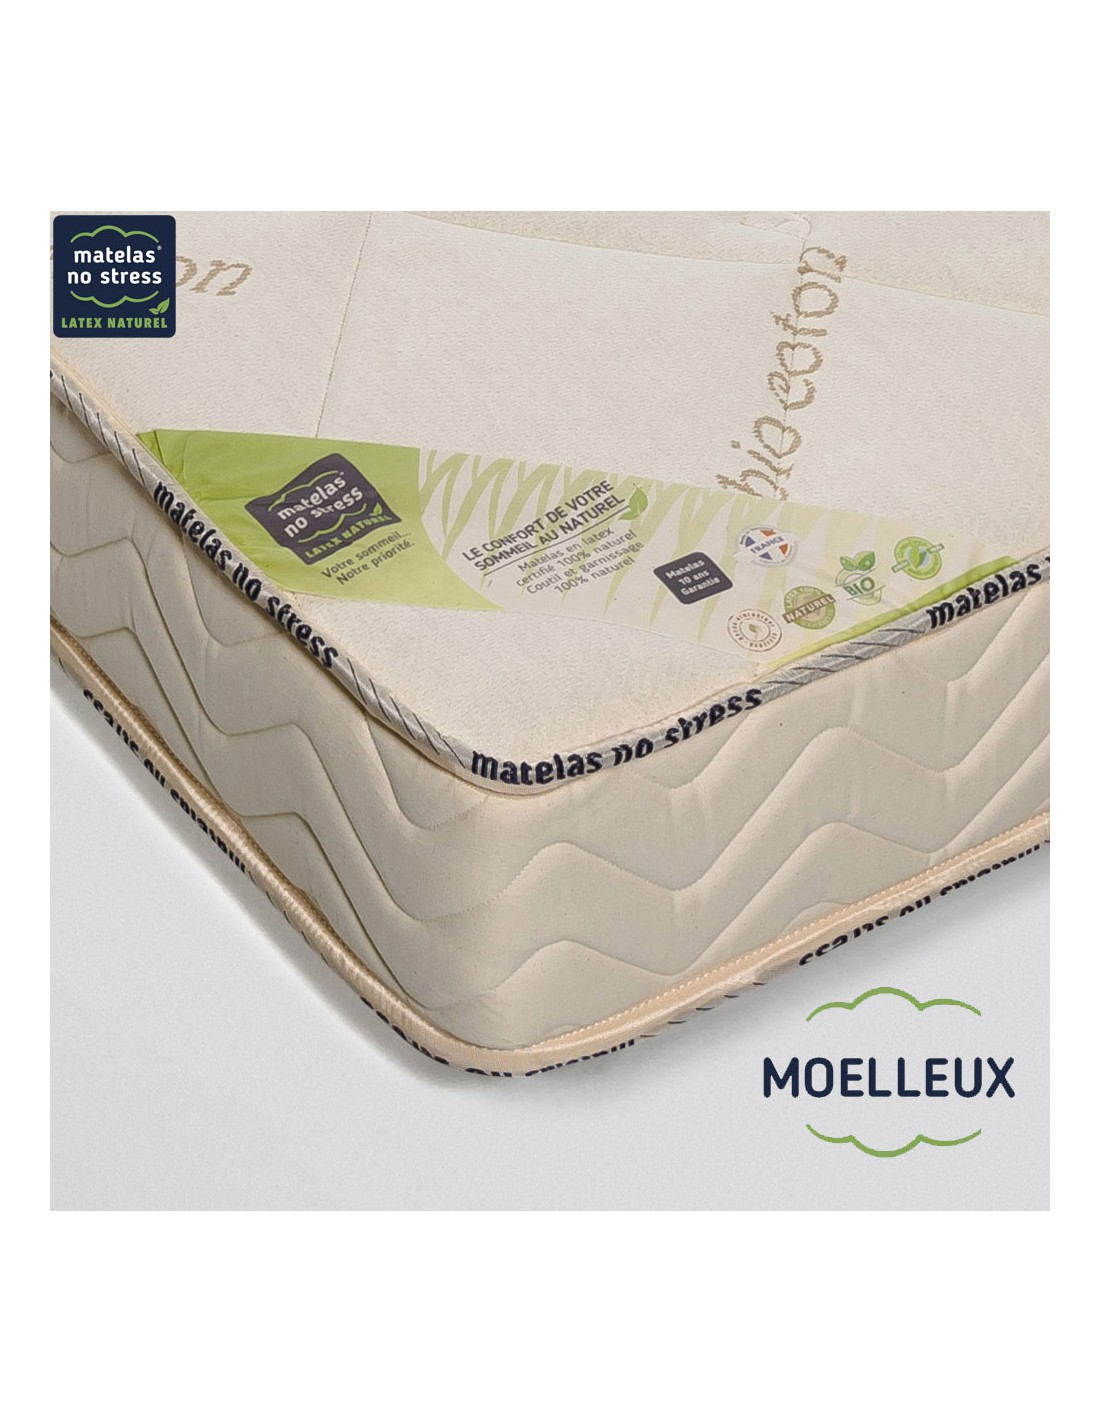 matelas moelleux 2x80x200 en latex naturel. Black Bedroom Furniture Sets. Home Design Ideas